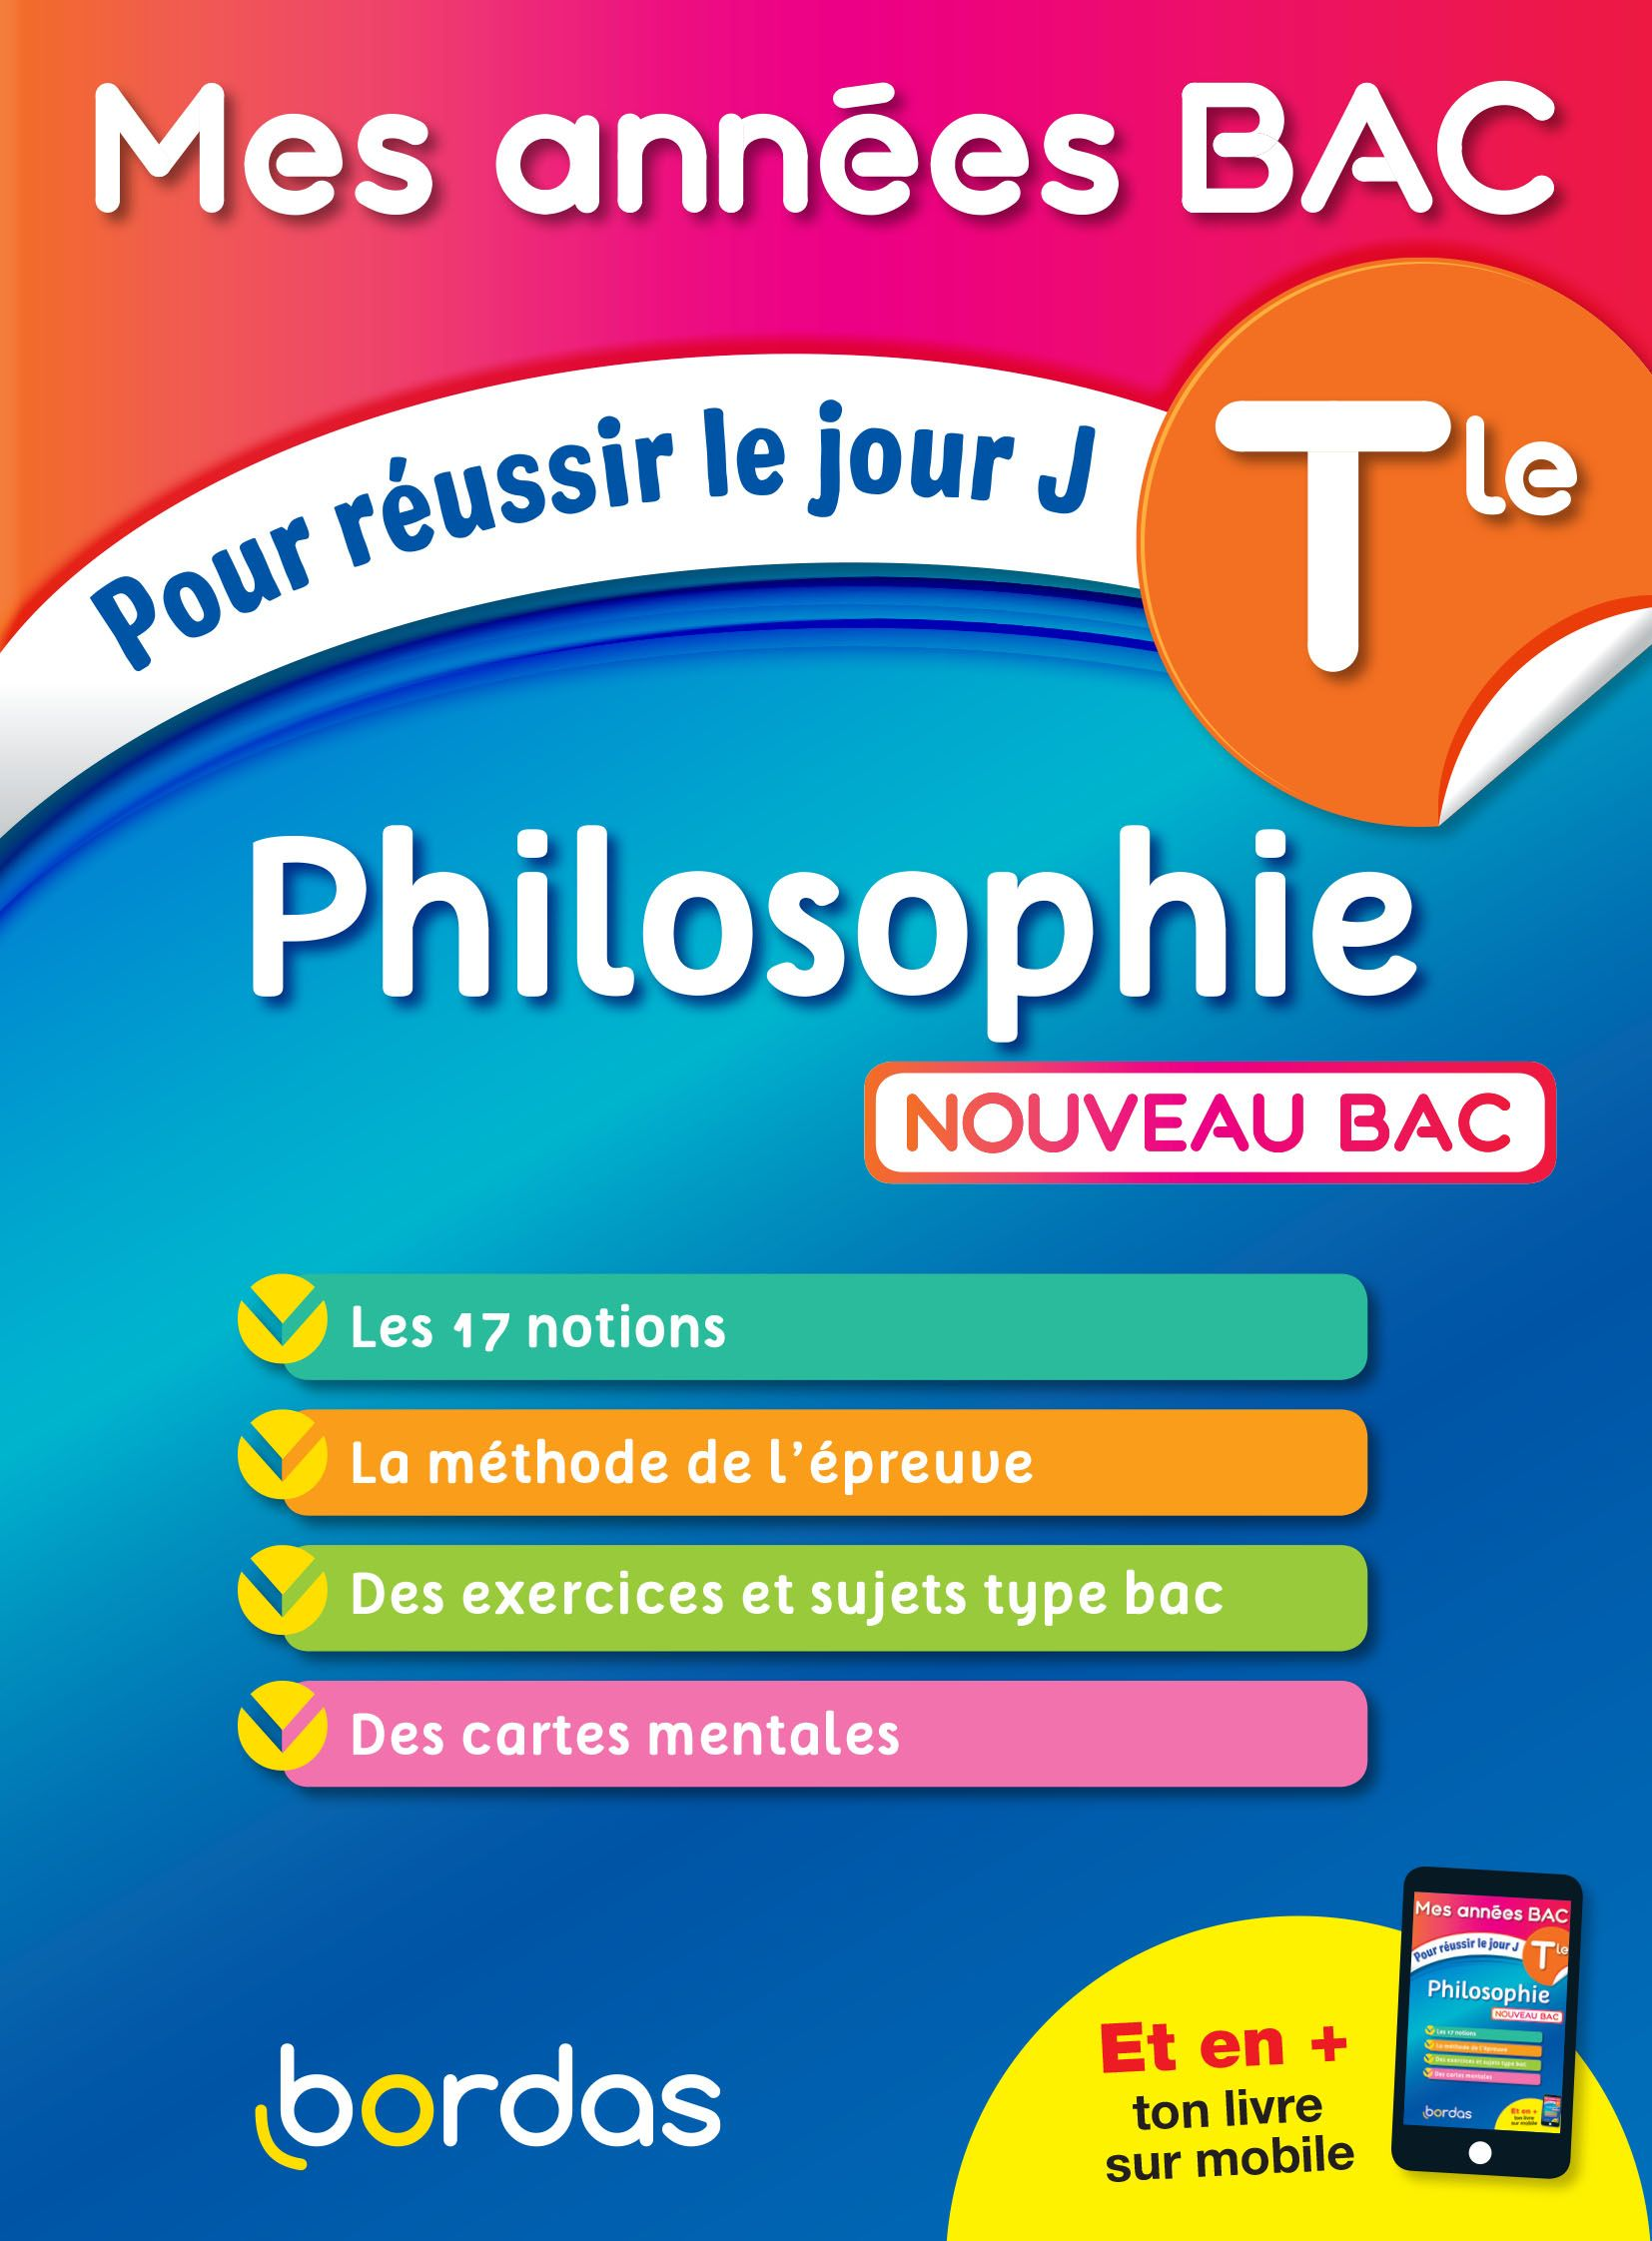 Mes Annees Bac Cours Exercices Philosophie Tle Bac 2021 Bac Maths Philosophie Terminale Sujet Bac